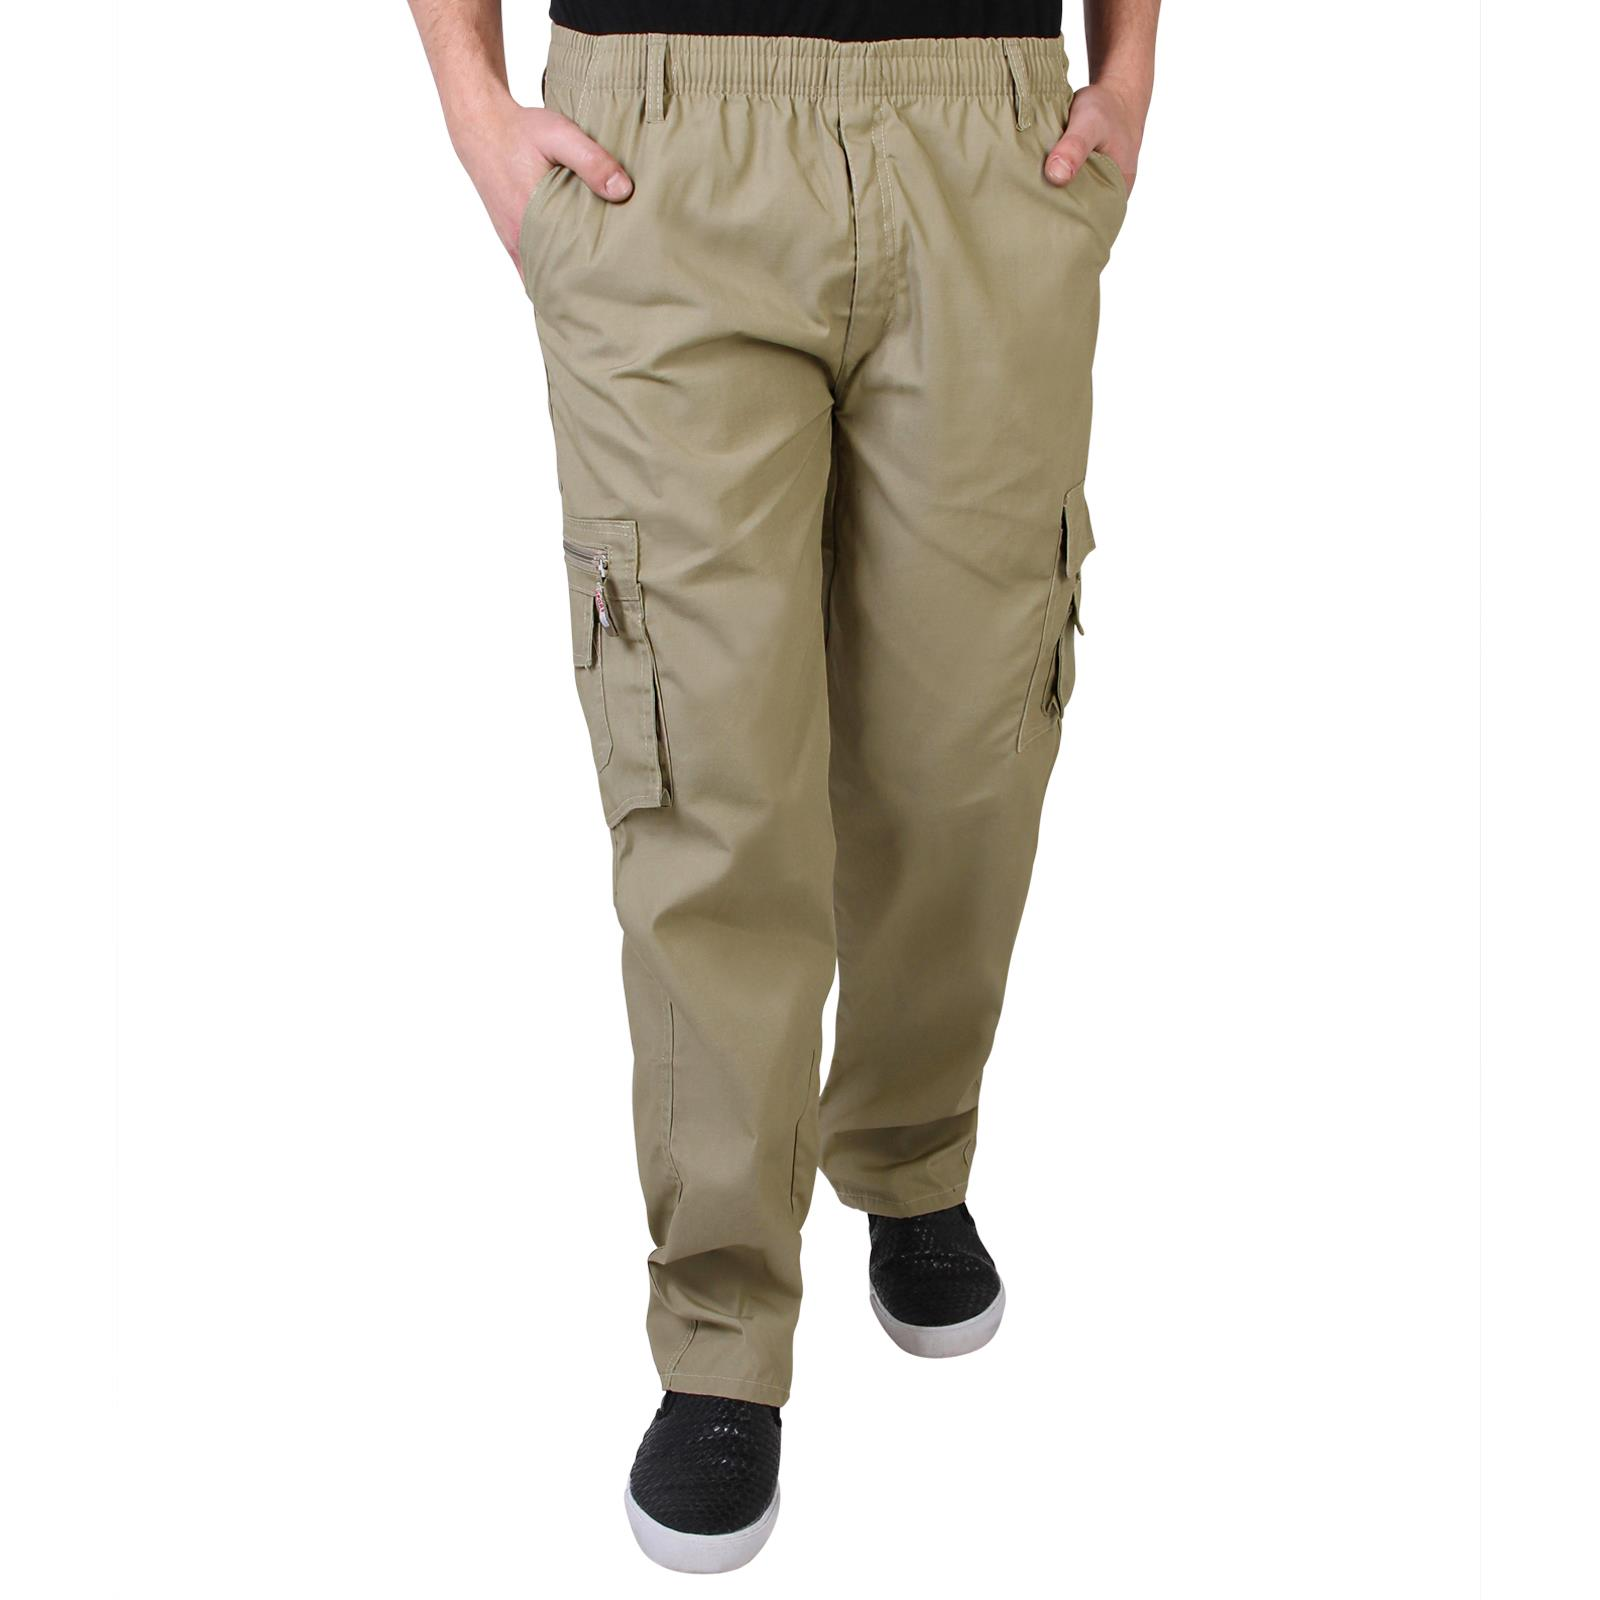 100% genuine first look buy cheap Buy Mens Army Cargo Trousers Cotton Combat Pants Military Work ...